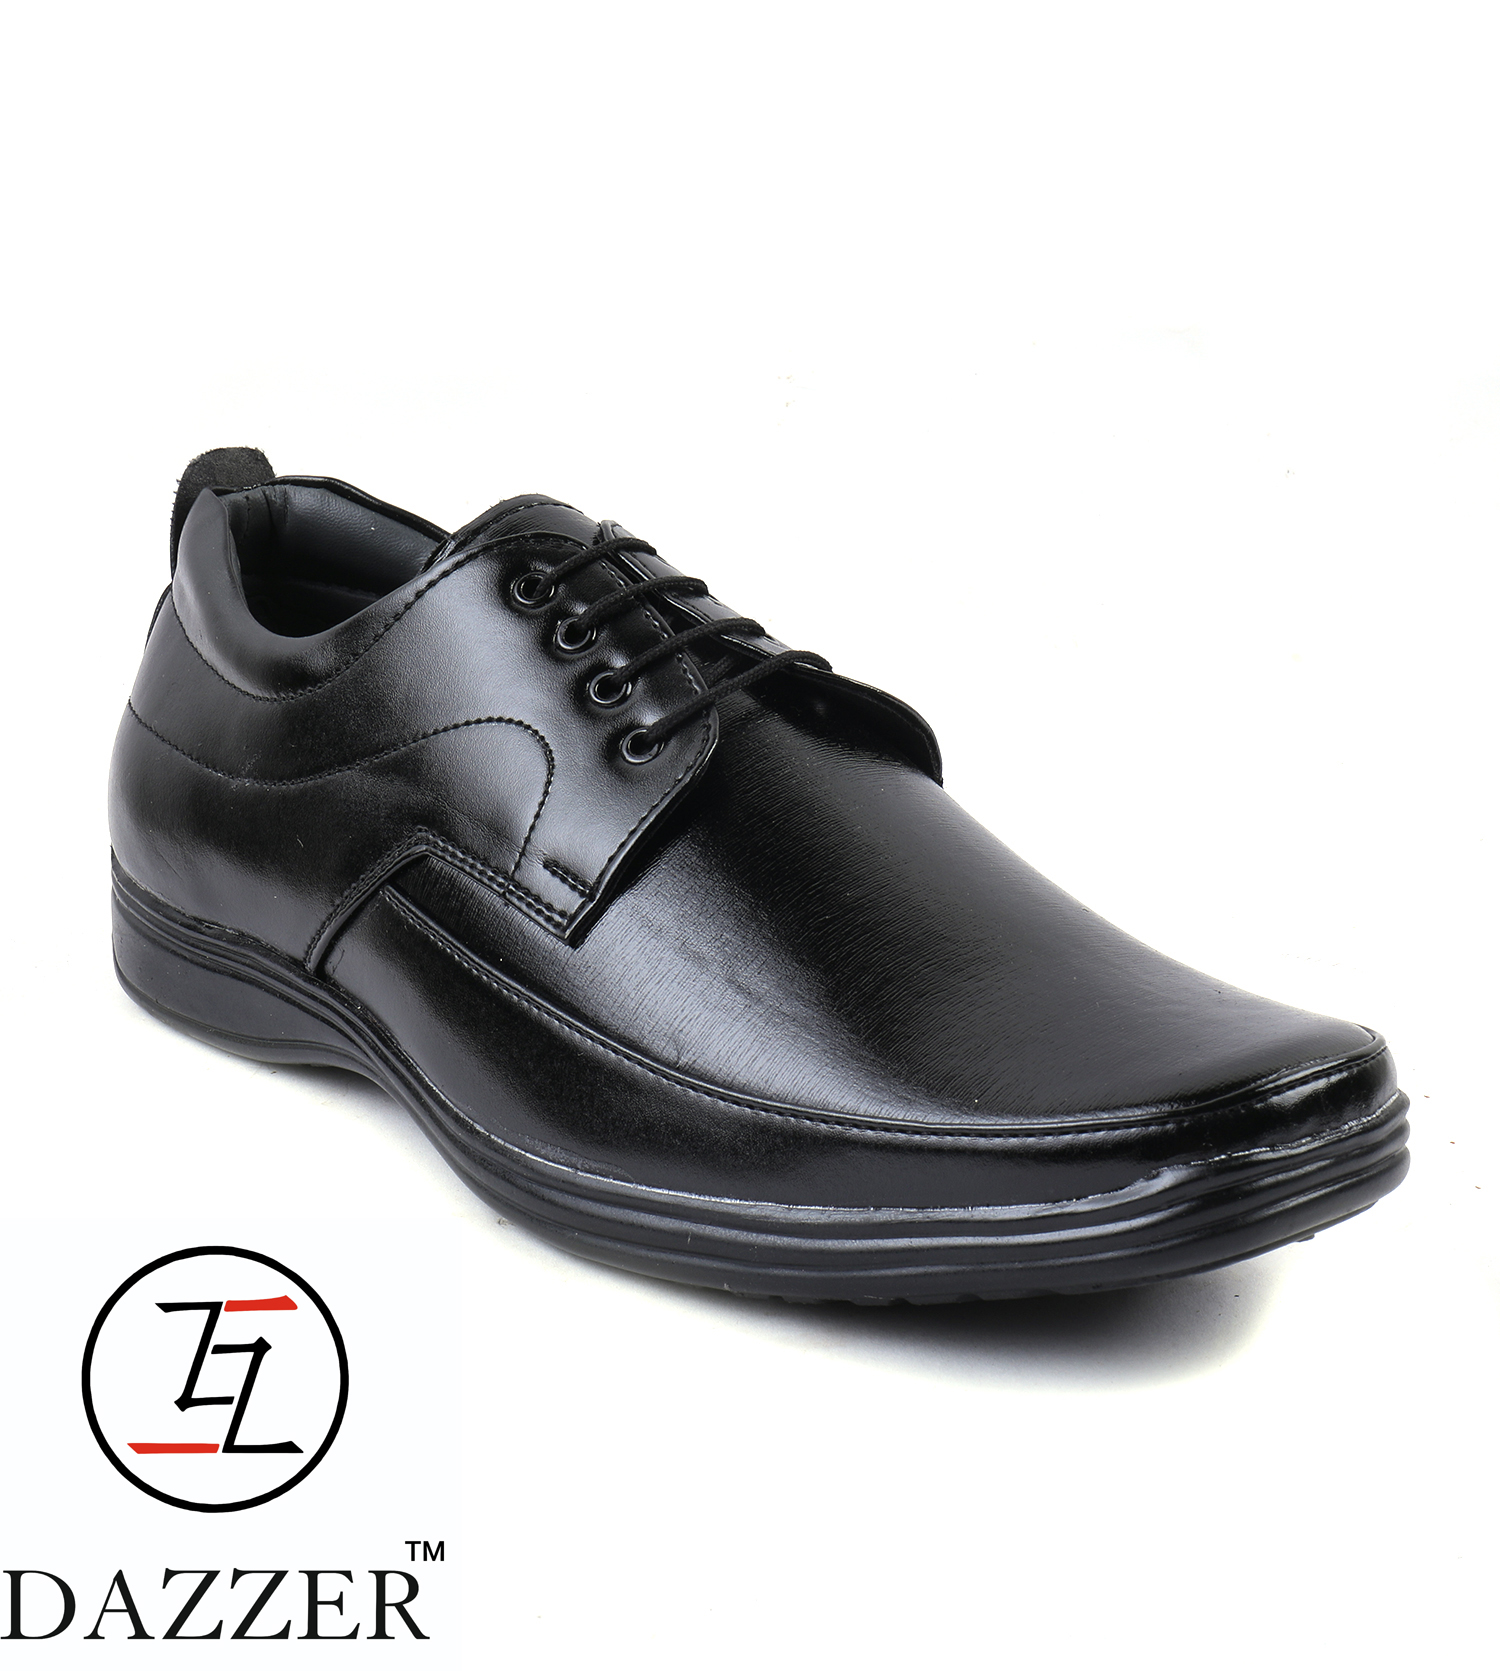 Dazzer 457 Lace Up Synthetic Formal Shoes For Men 457Black (Black, 6-10, 8 PAIR)